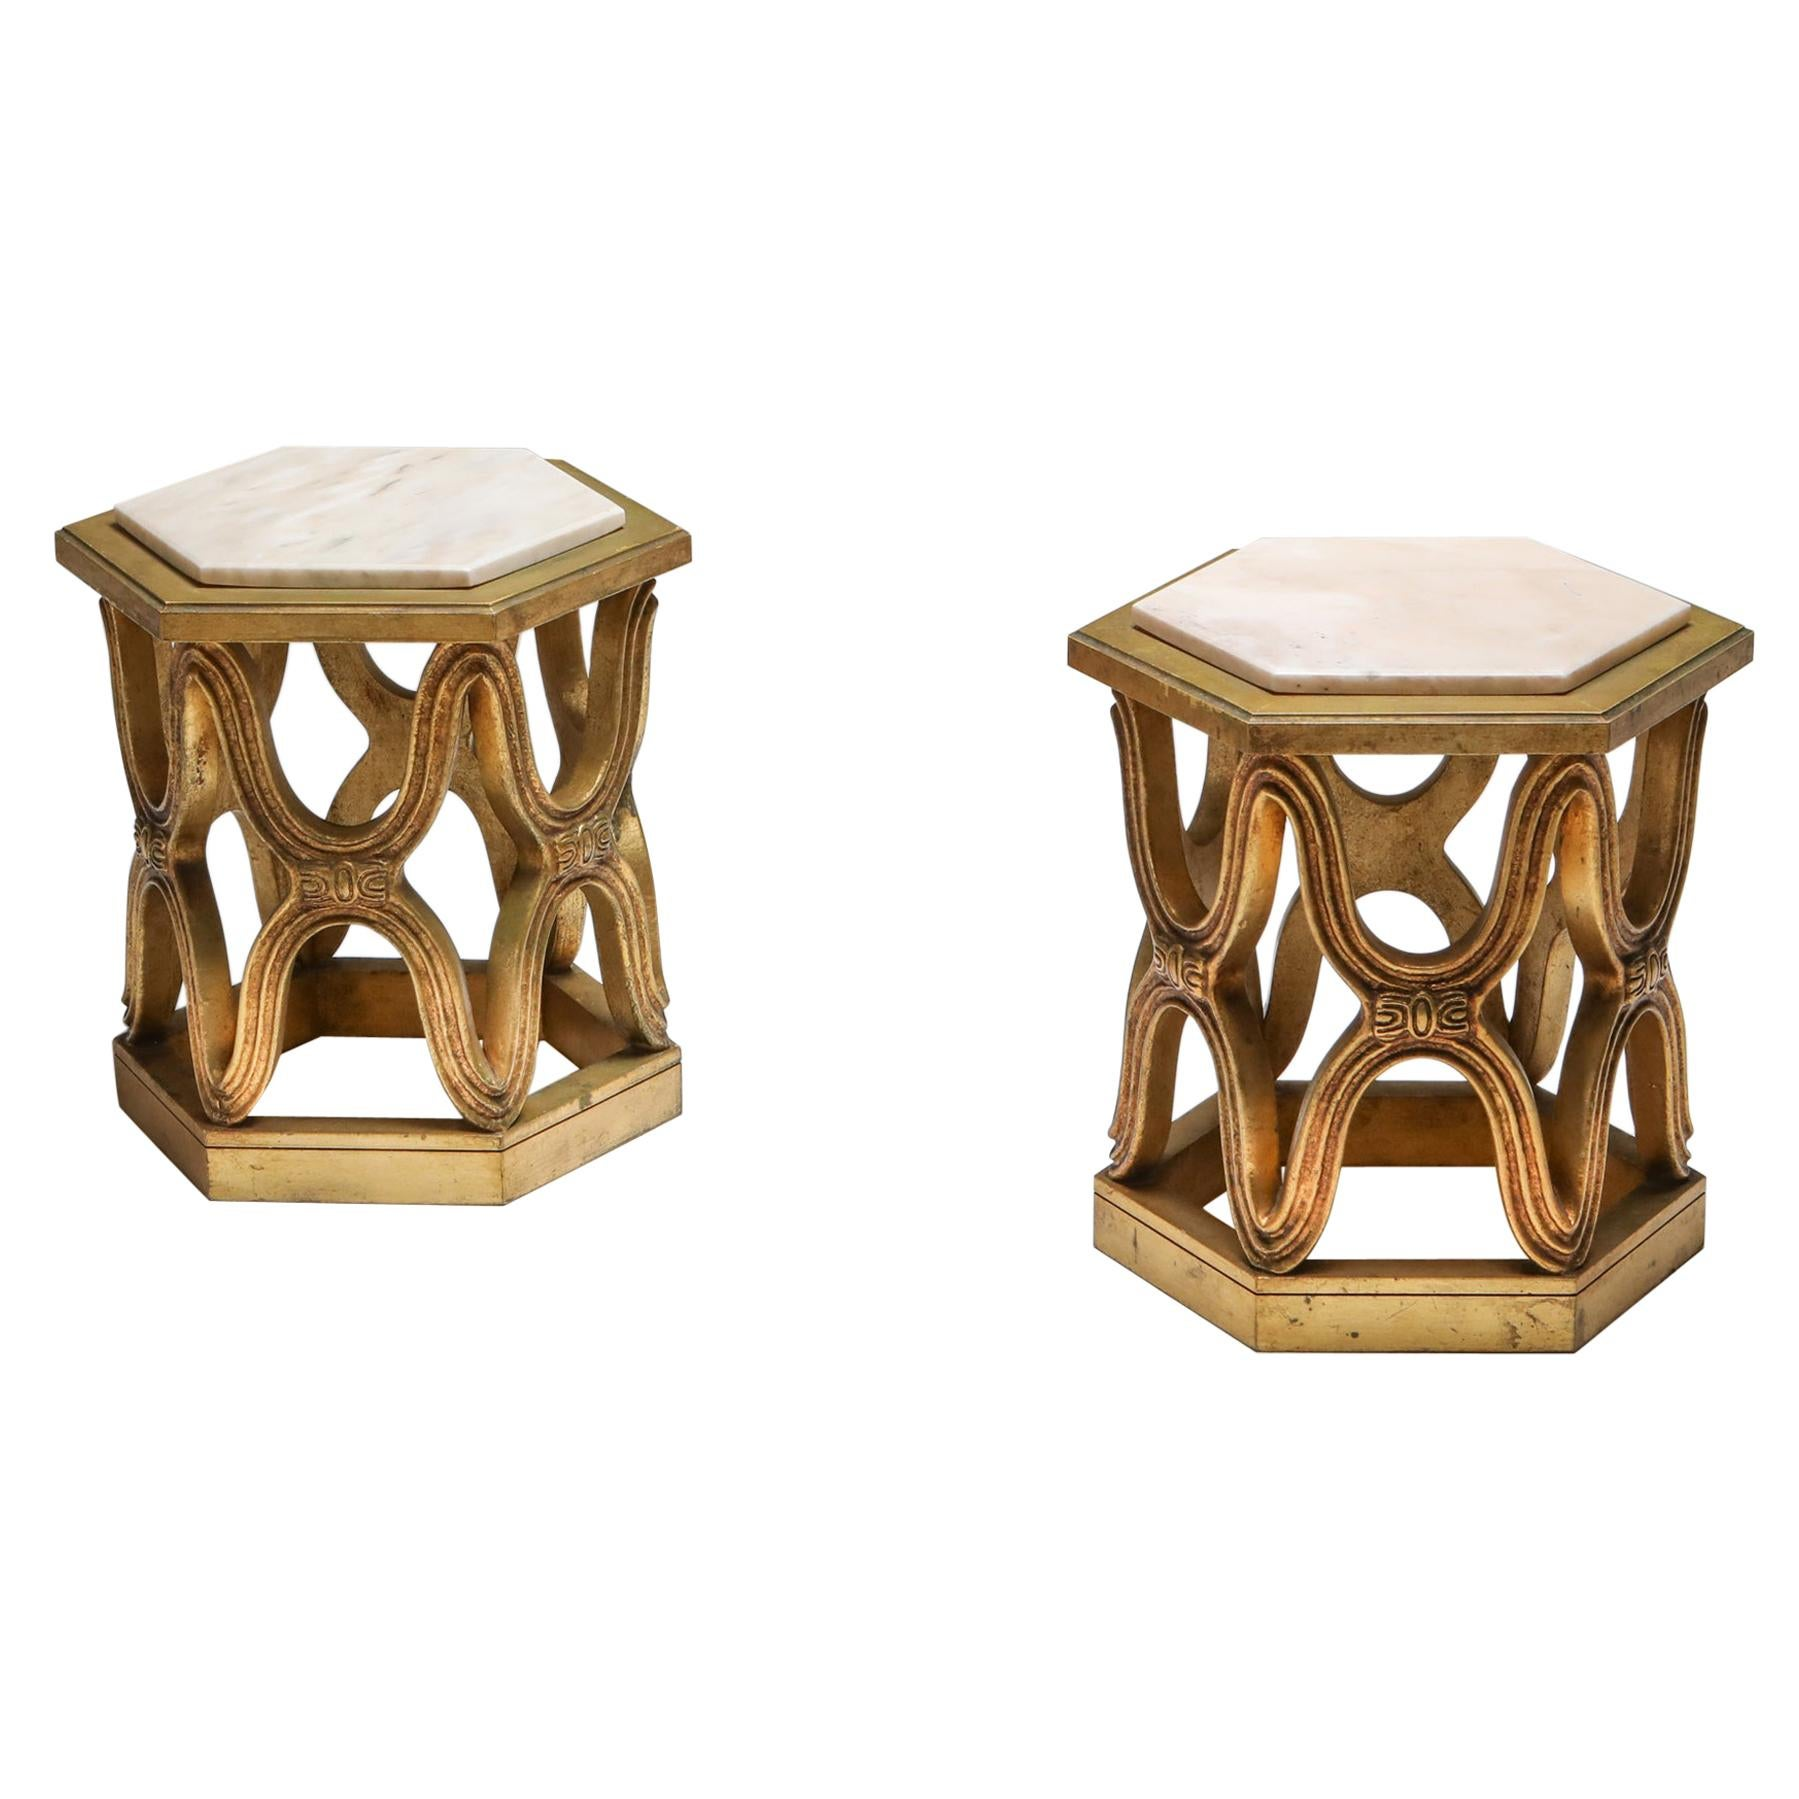 Carved Giltwood Side Tables with Marble Top, 1970s